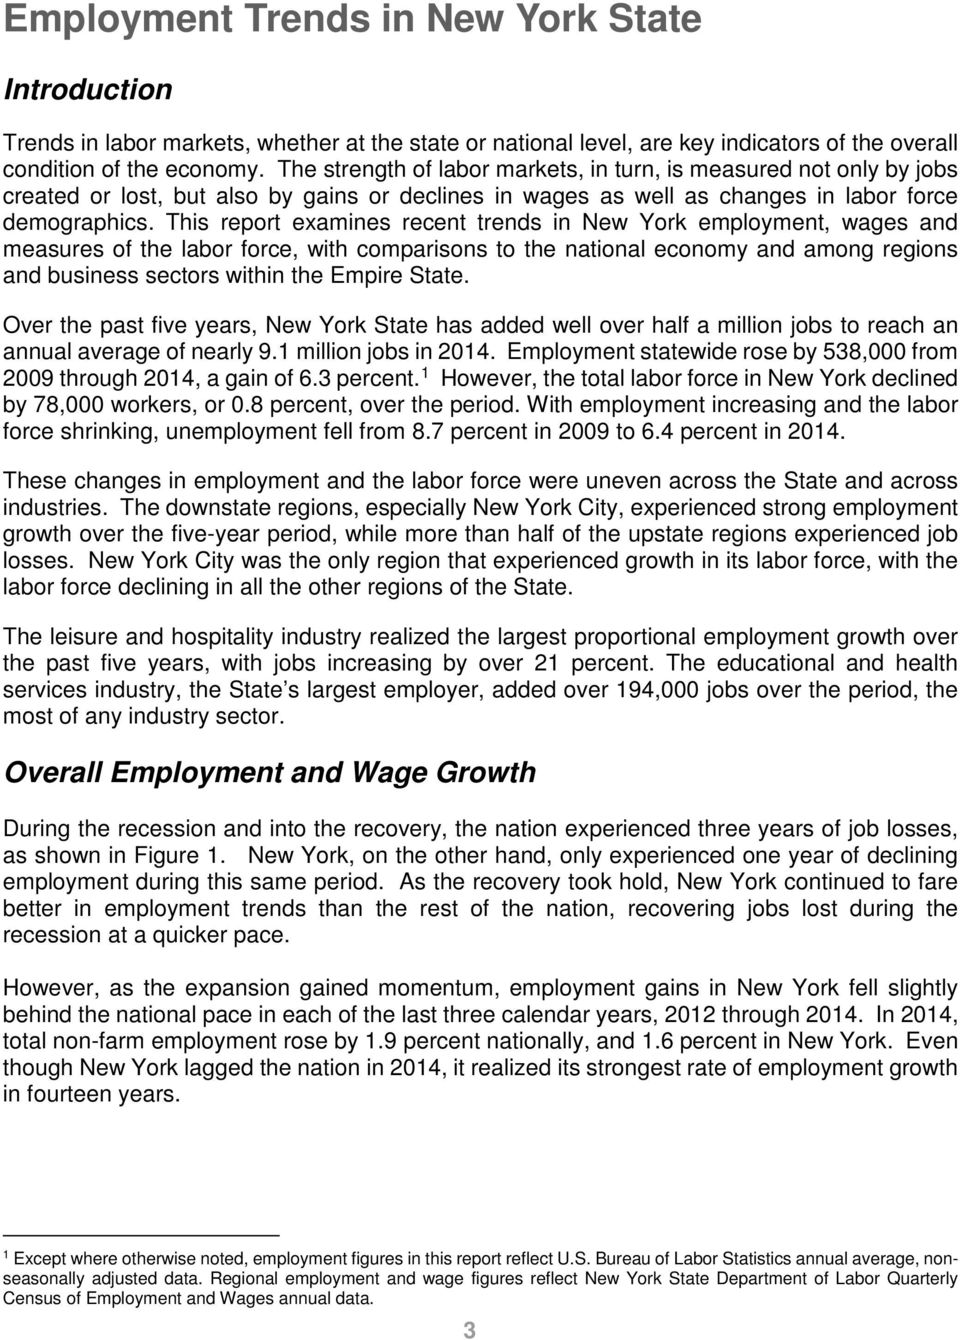 This report examines recent trends in New York employment, wages and measures of the labor force, with comparisons to the national economy and among regions and business sectors within the Empire